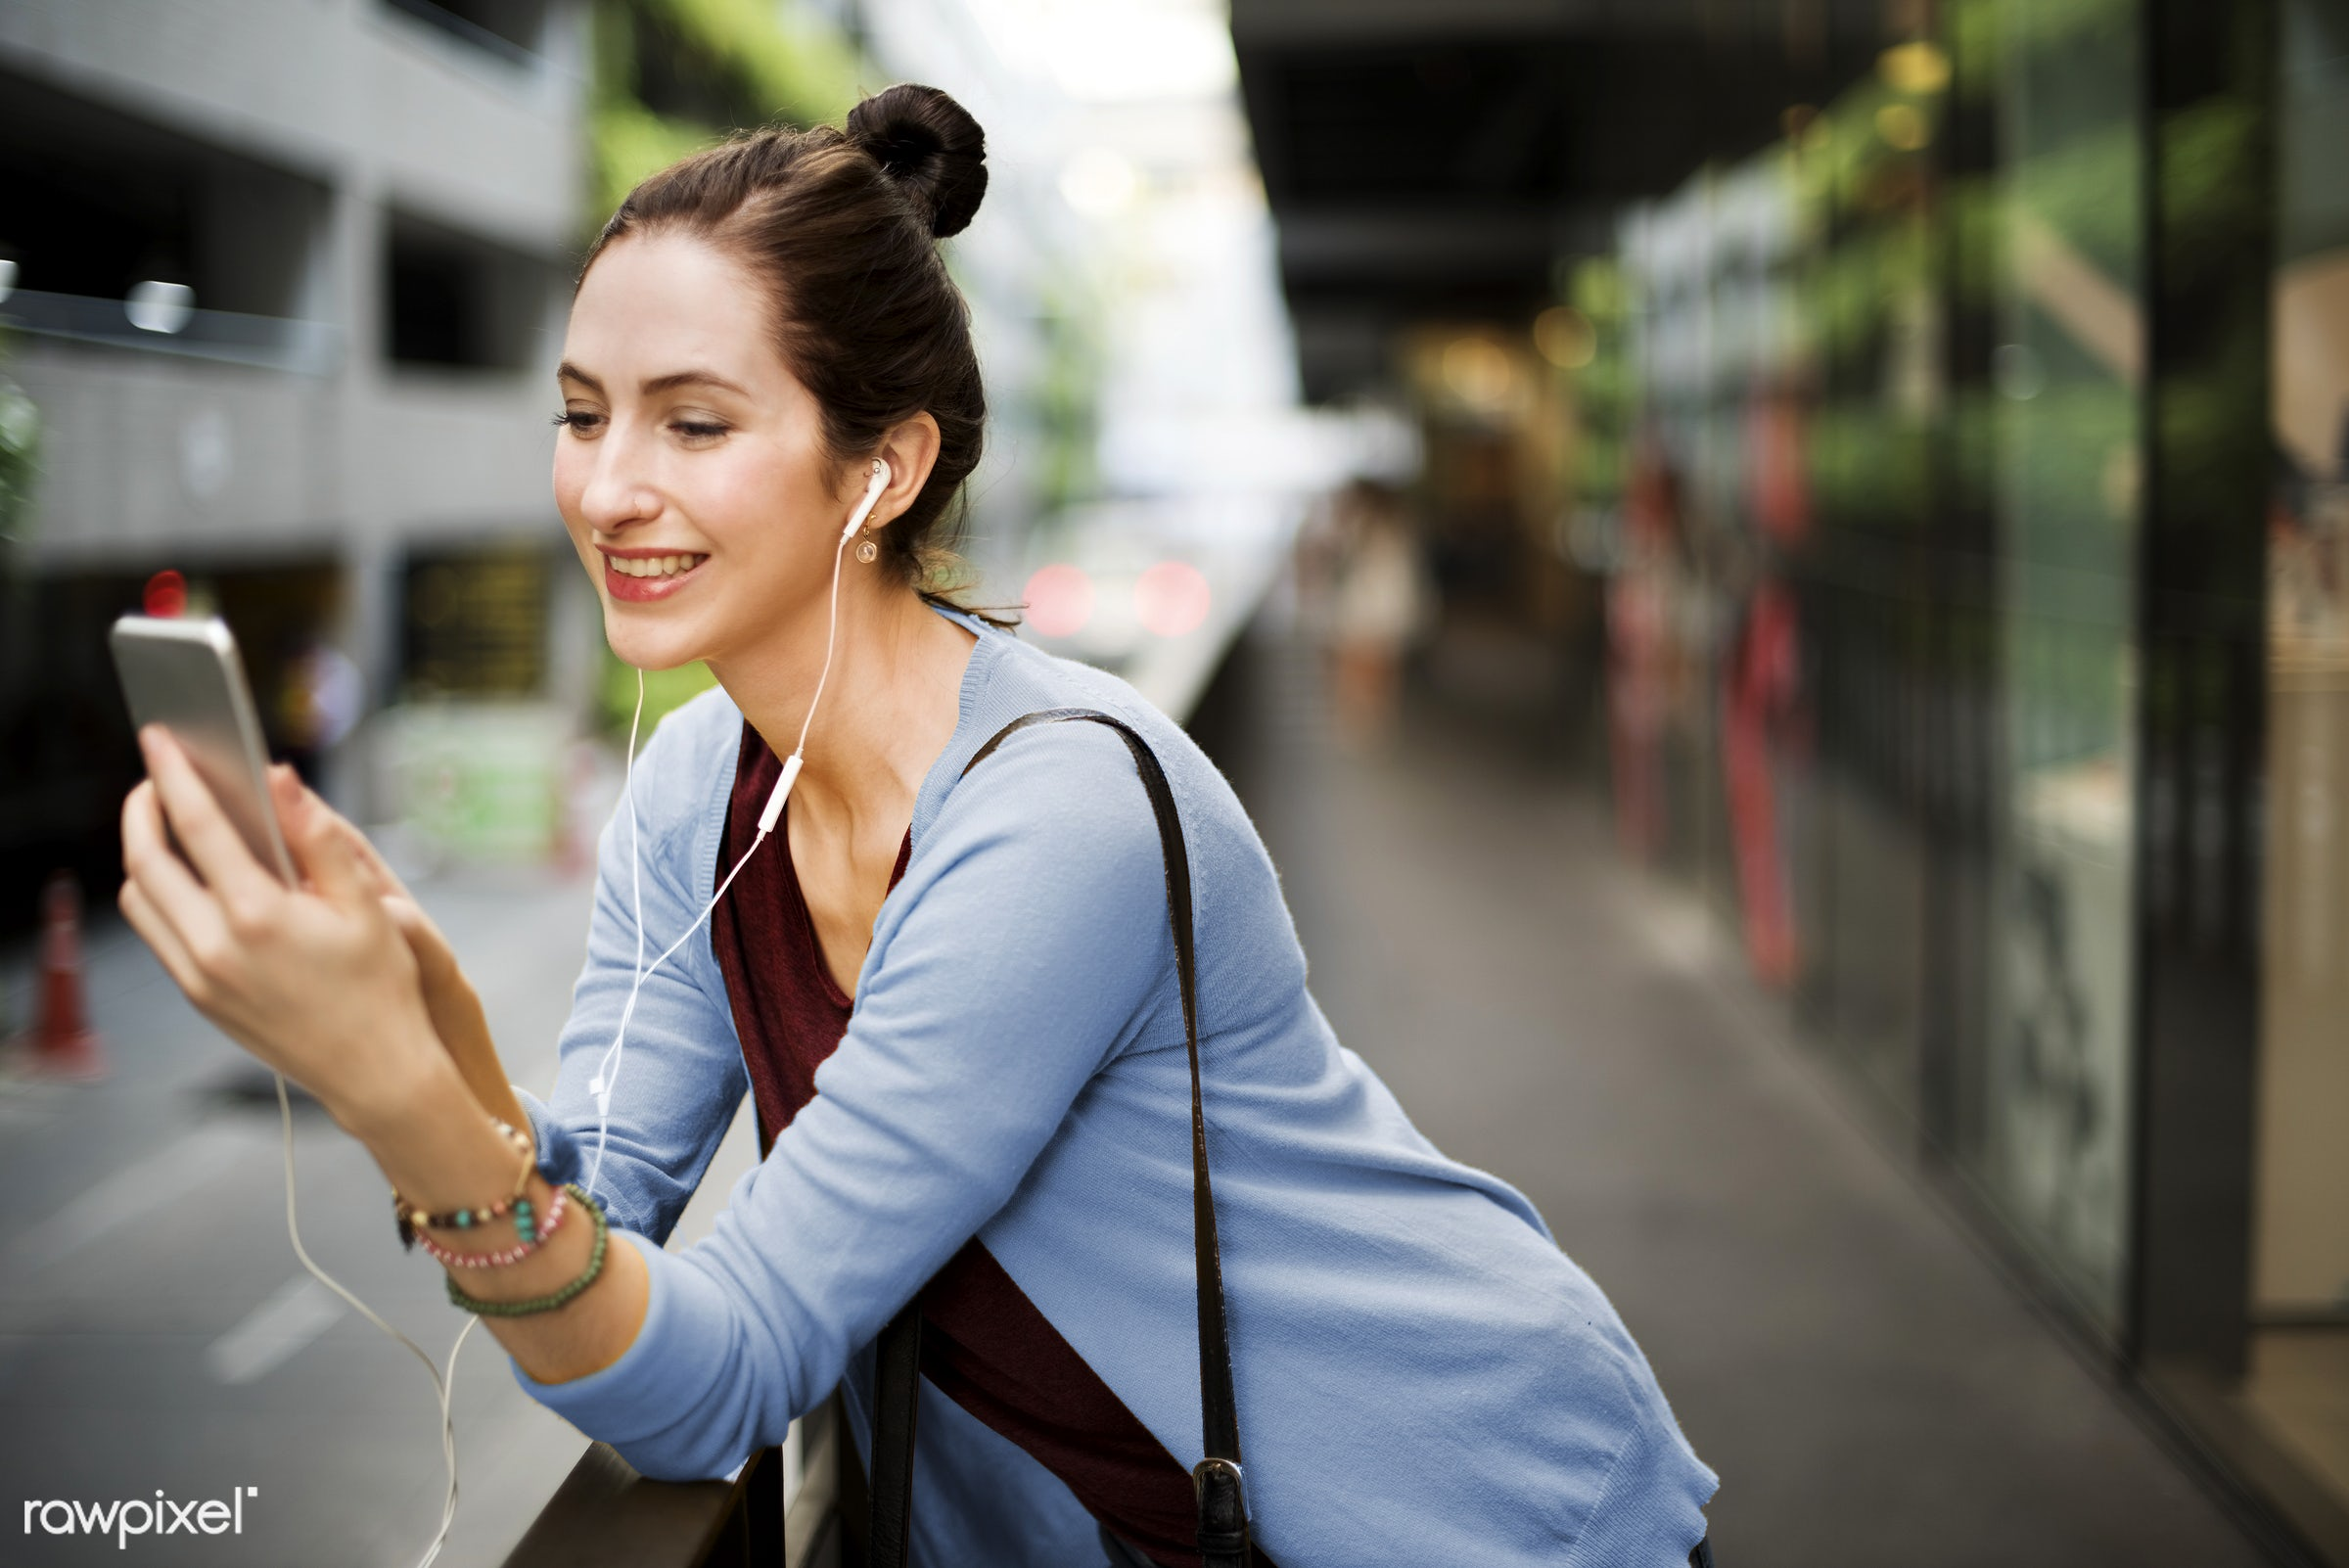 lifestyles, activity, audio equipment, casual, cheerful, chilling, city, connection, earphones, enjoyment, entertainment,...